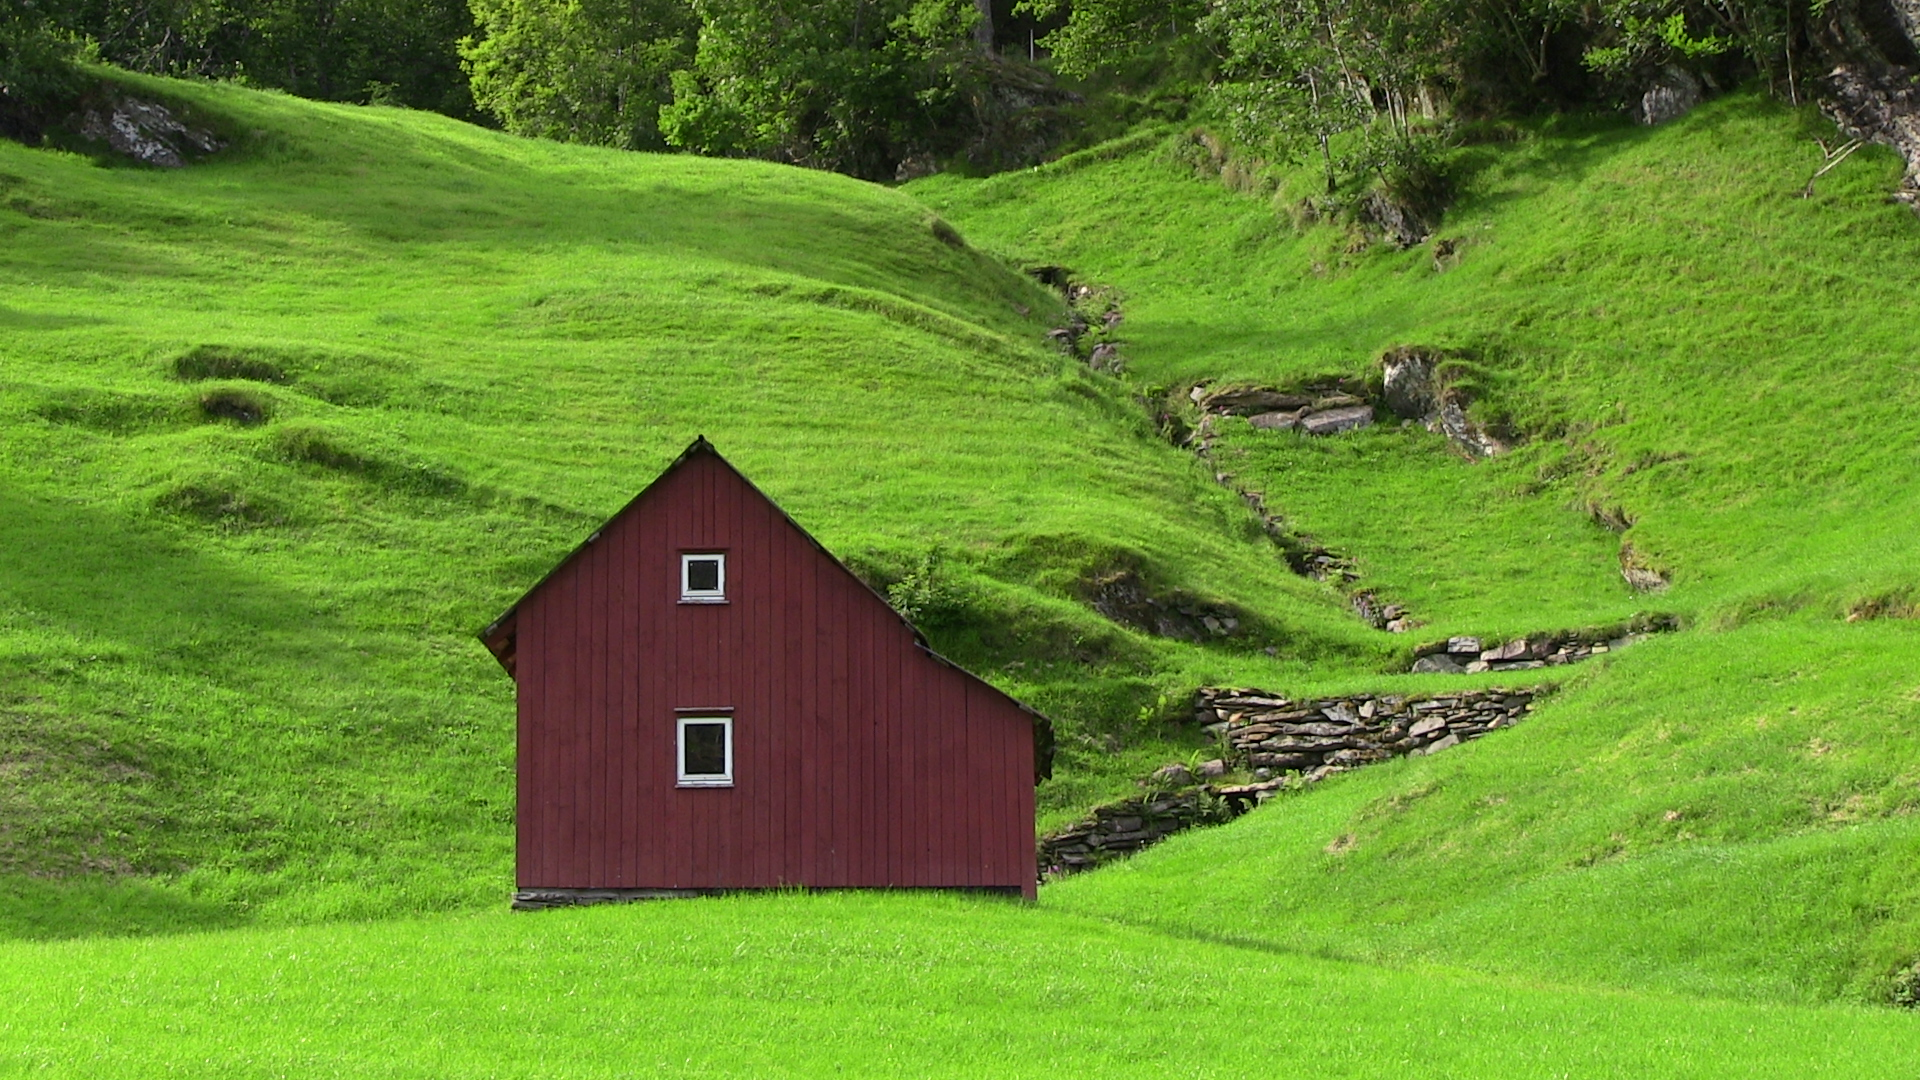 Summer hay barn on pasture-land - © Anne Gullbjørg Digranes